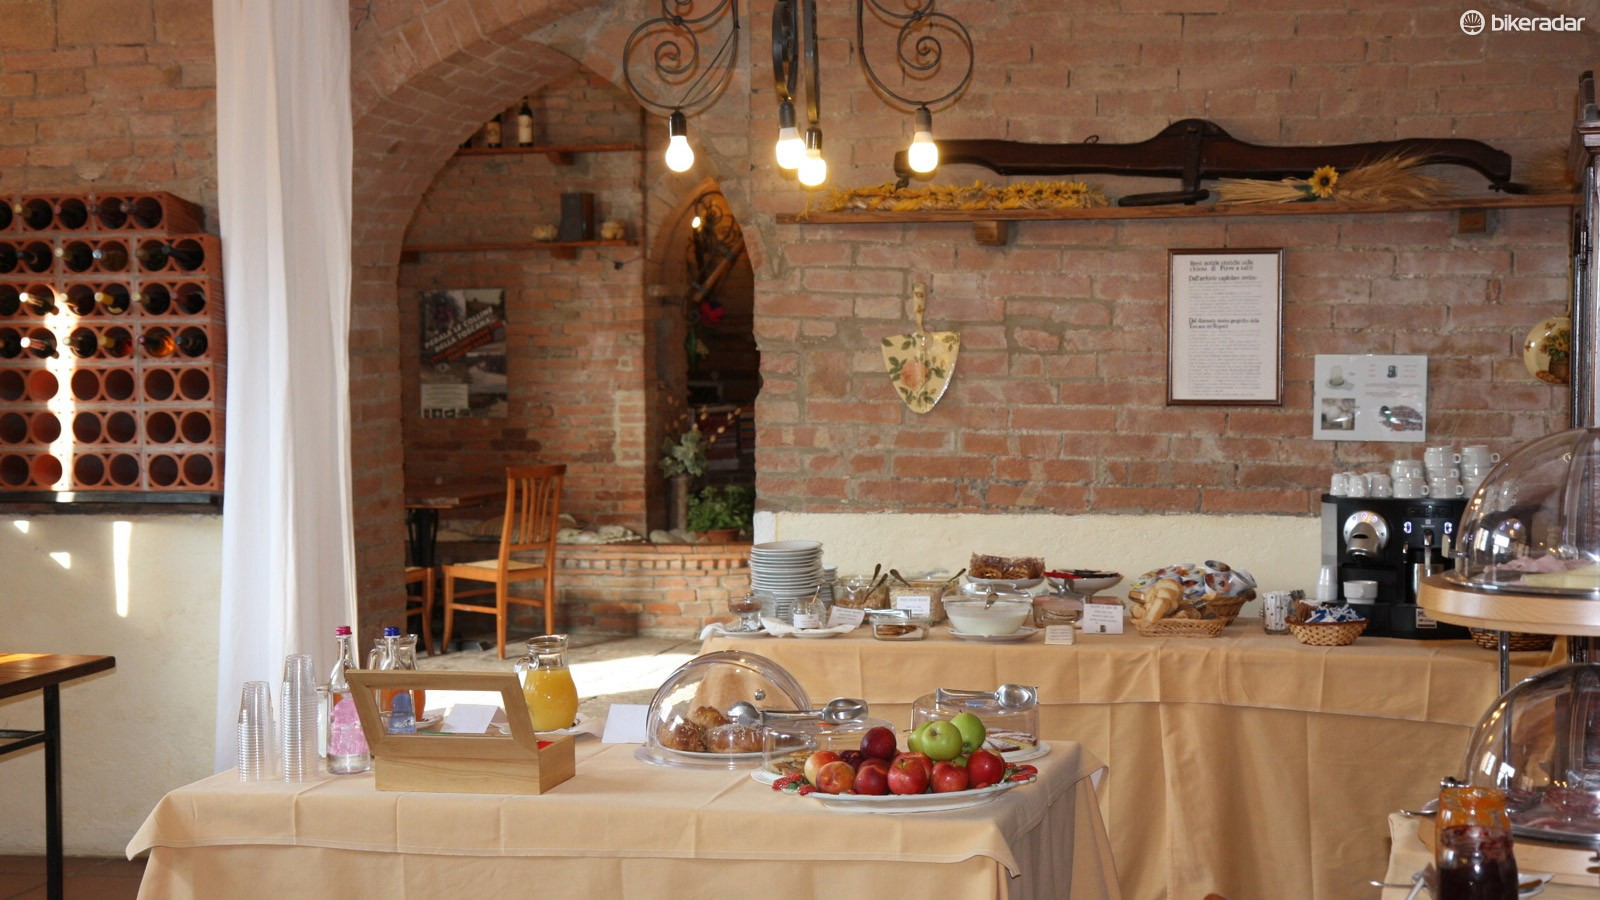 Pieve a Salti, in Chianti, is a converted farmhouse turned cycling agrotourism secret spot. Located along the L'Eroica course, Pieve a Salti is an example of the type of place S-Cape will send customers on self-guided tours